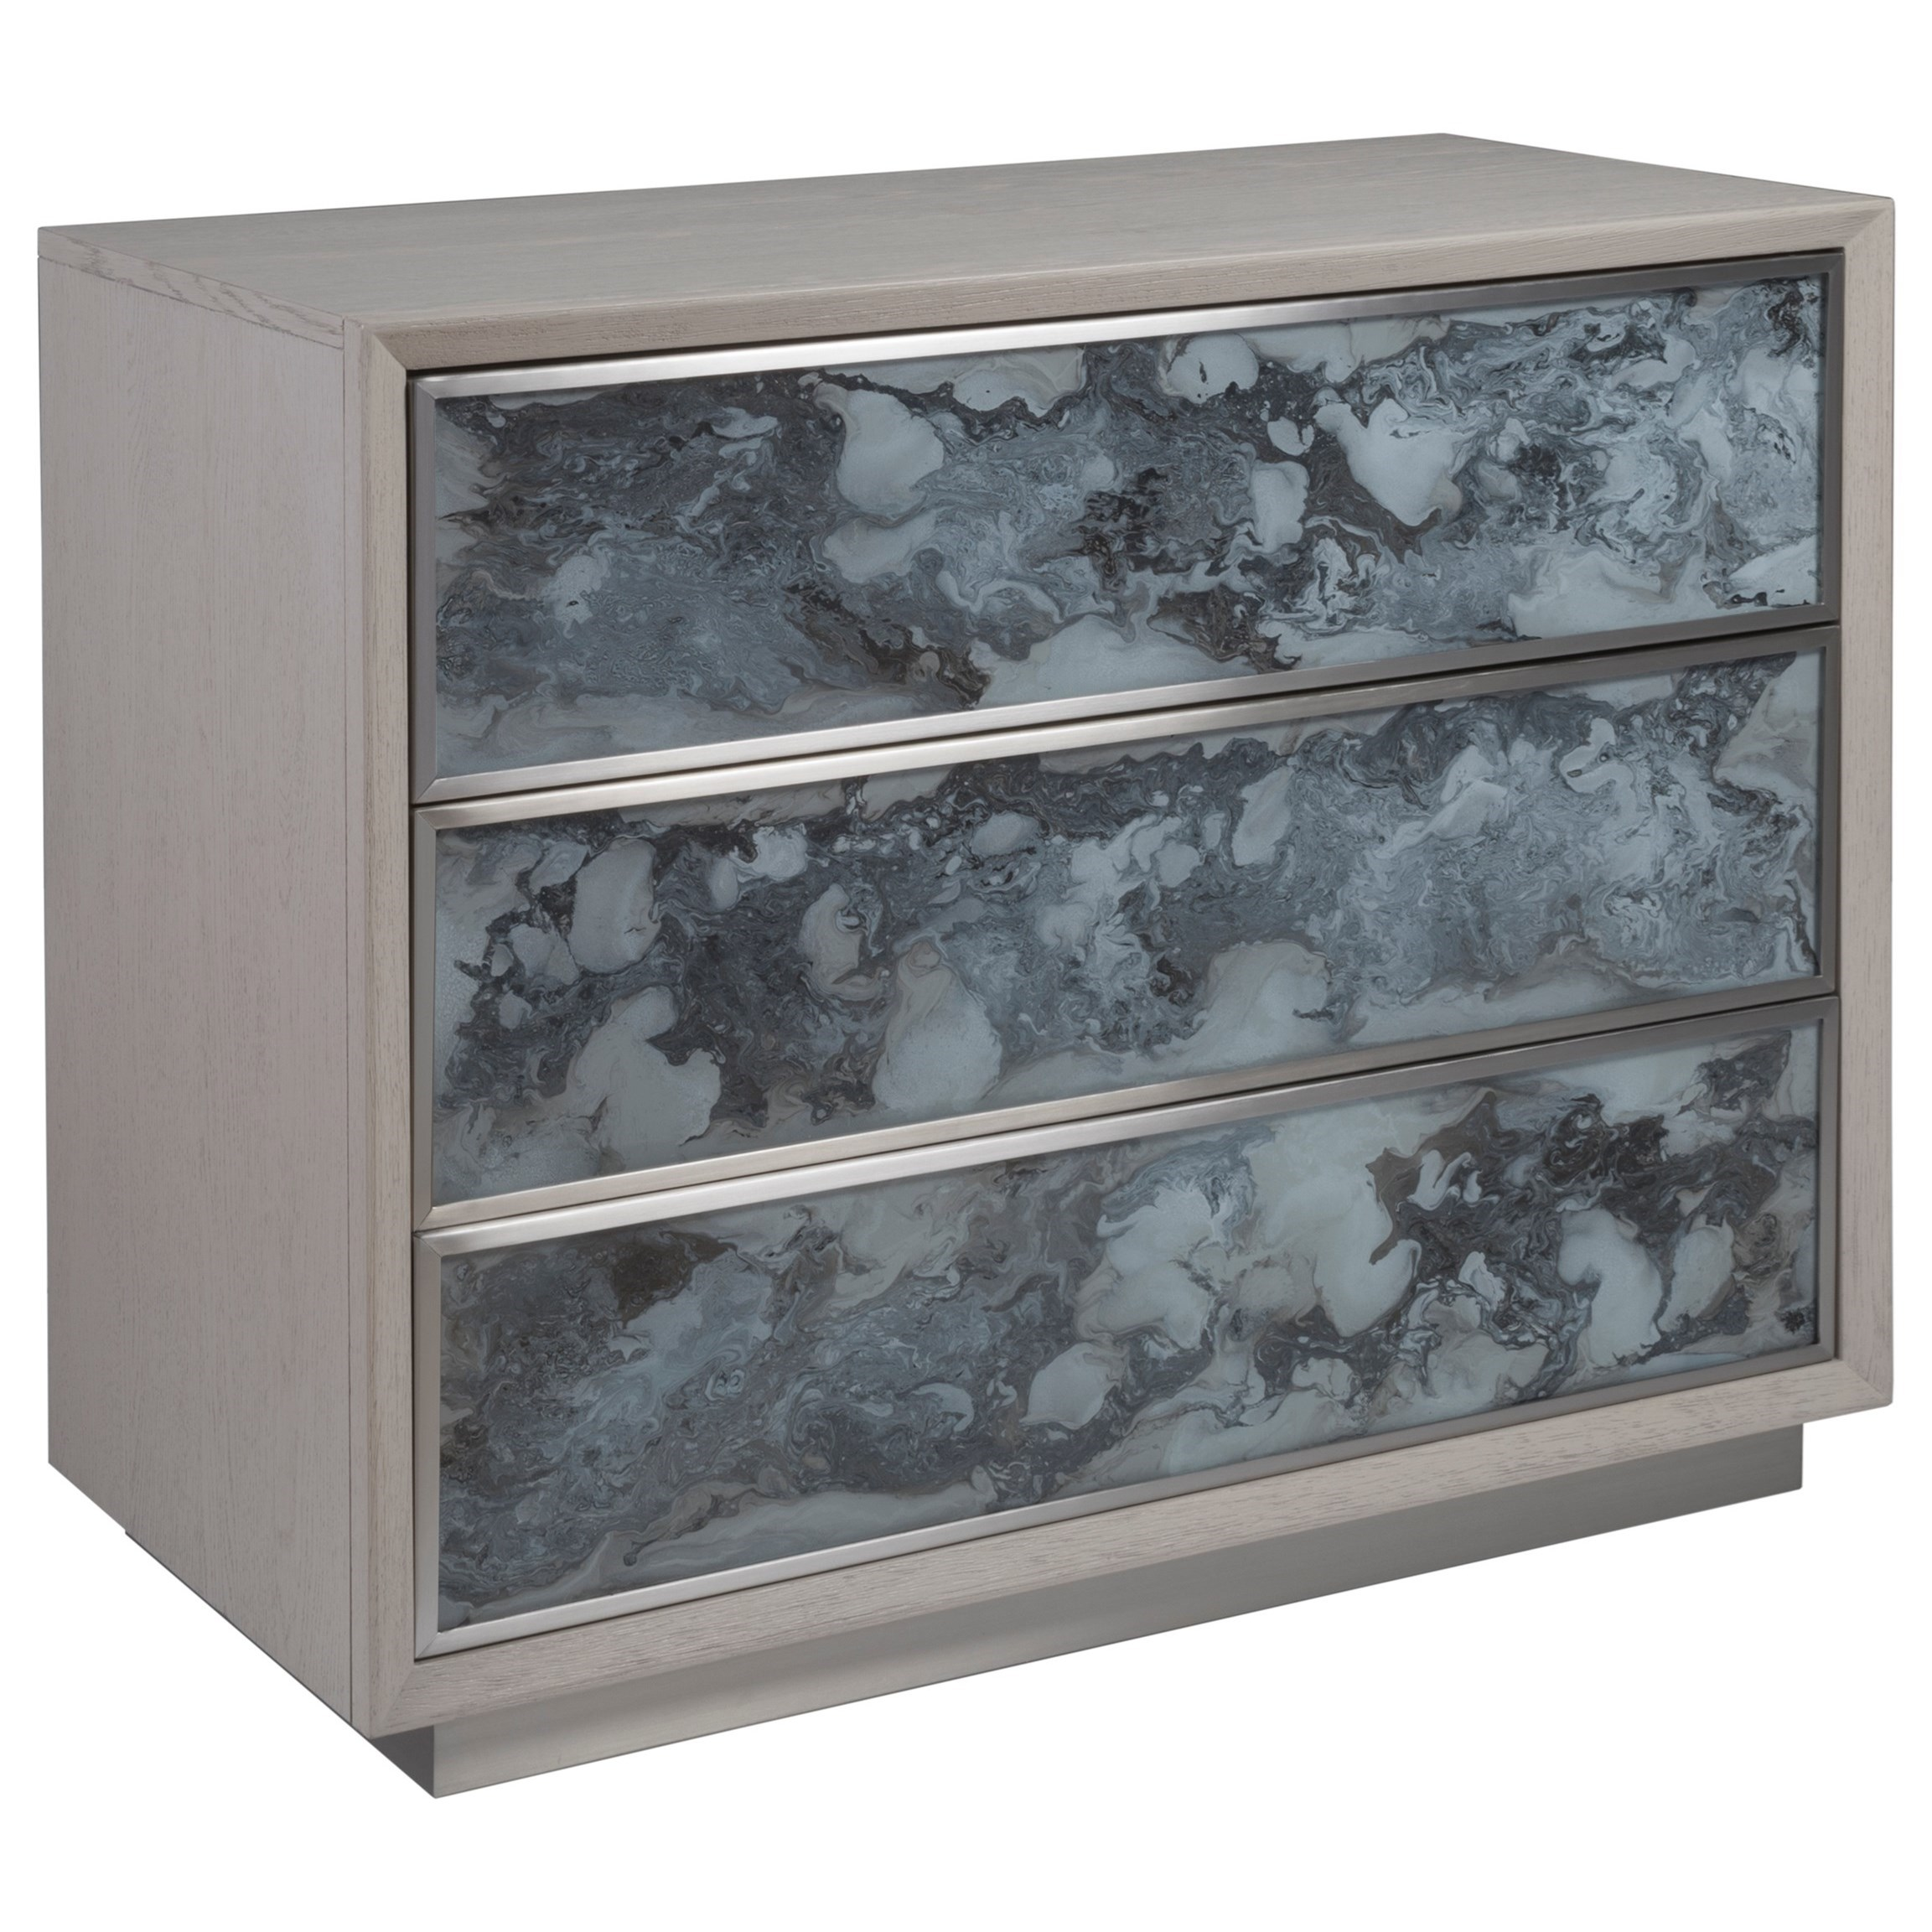 Metaphor Hall Chest by Artistica at Alison Craig Home Furnishings